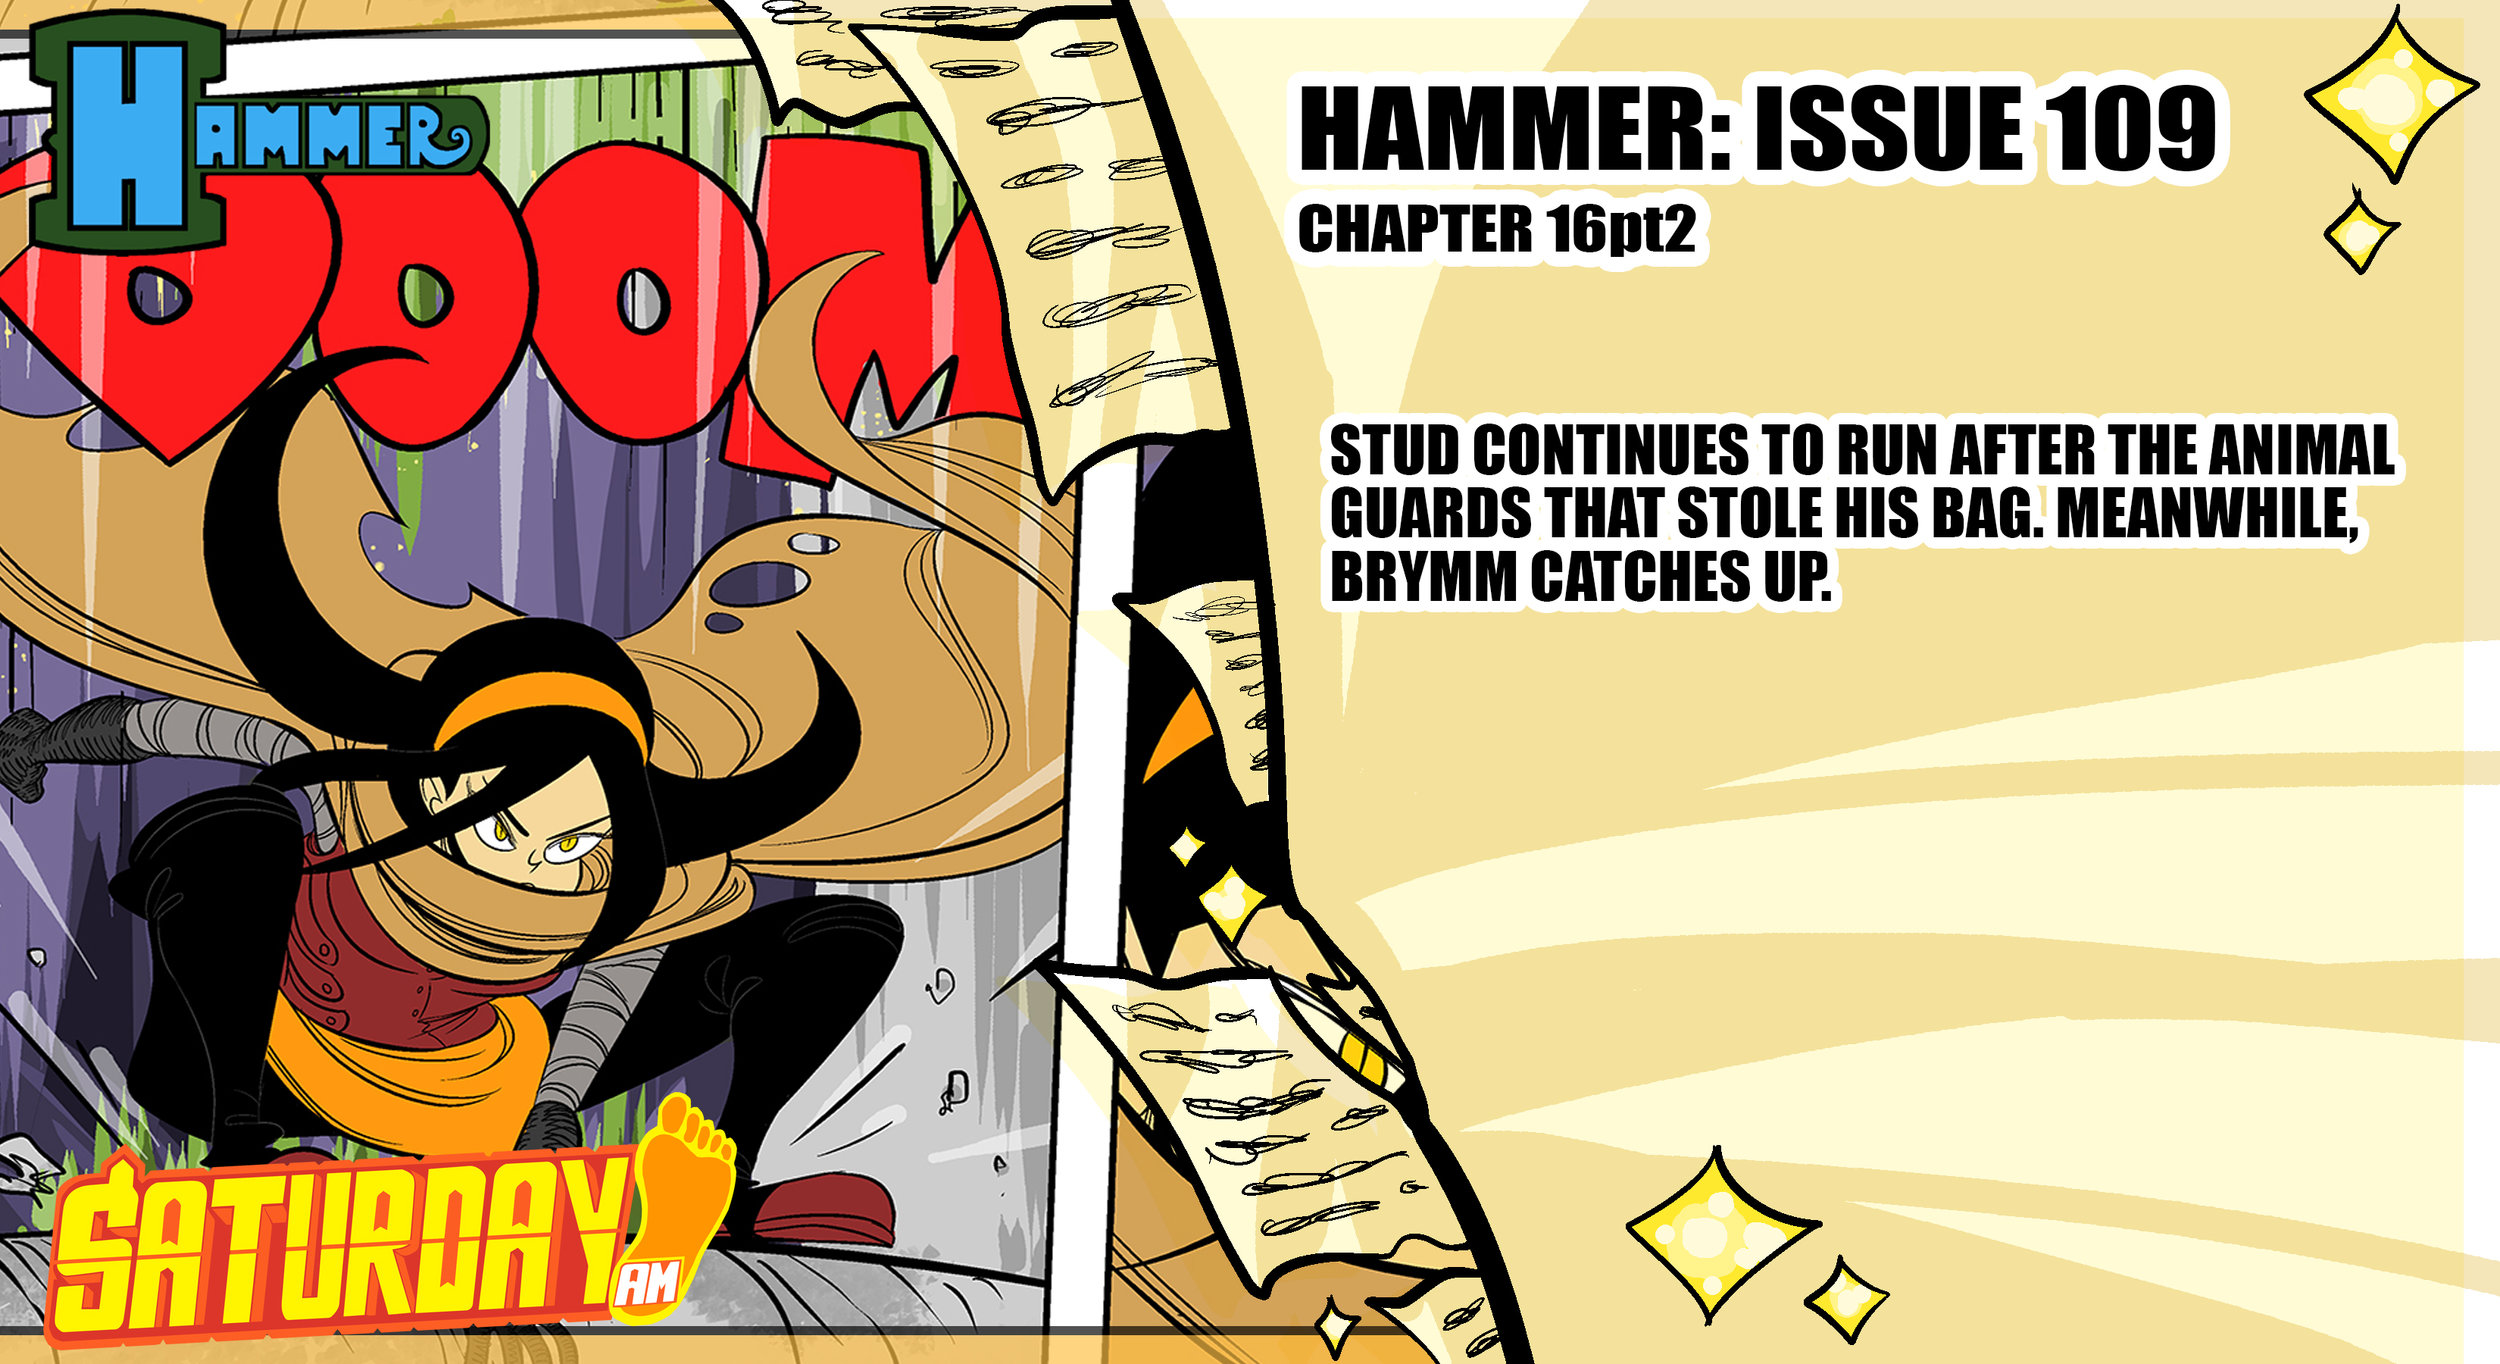 HAMMER WEBSITE_LATEST ISSUE GRAPHIC #109.jpg